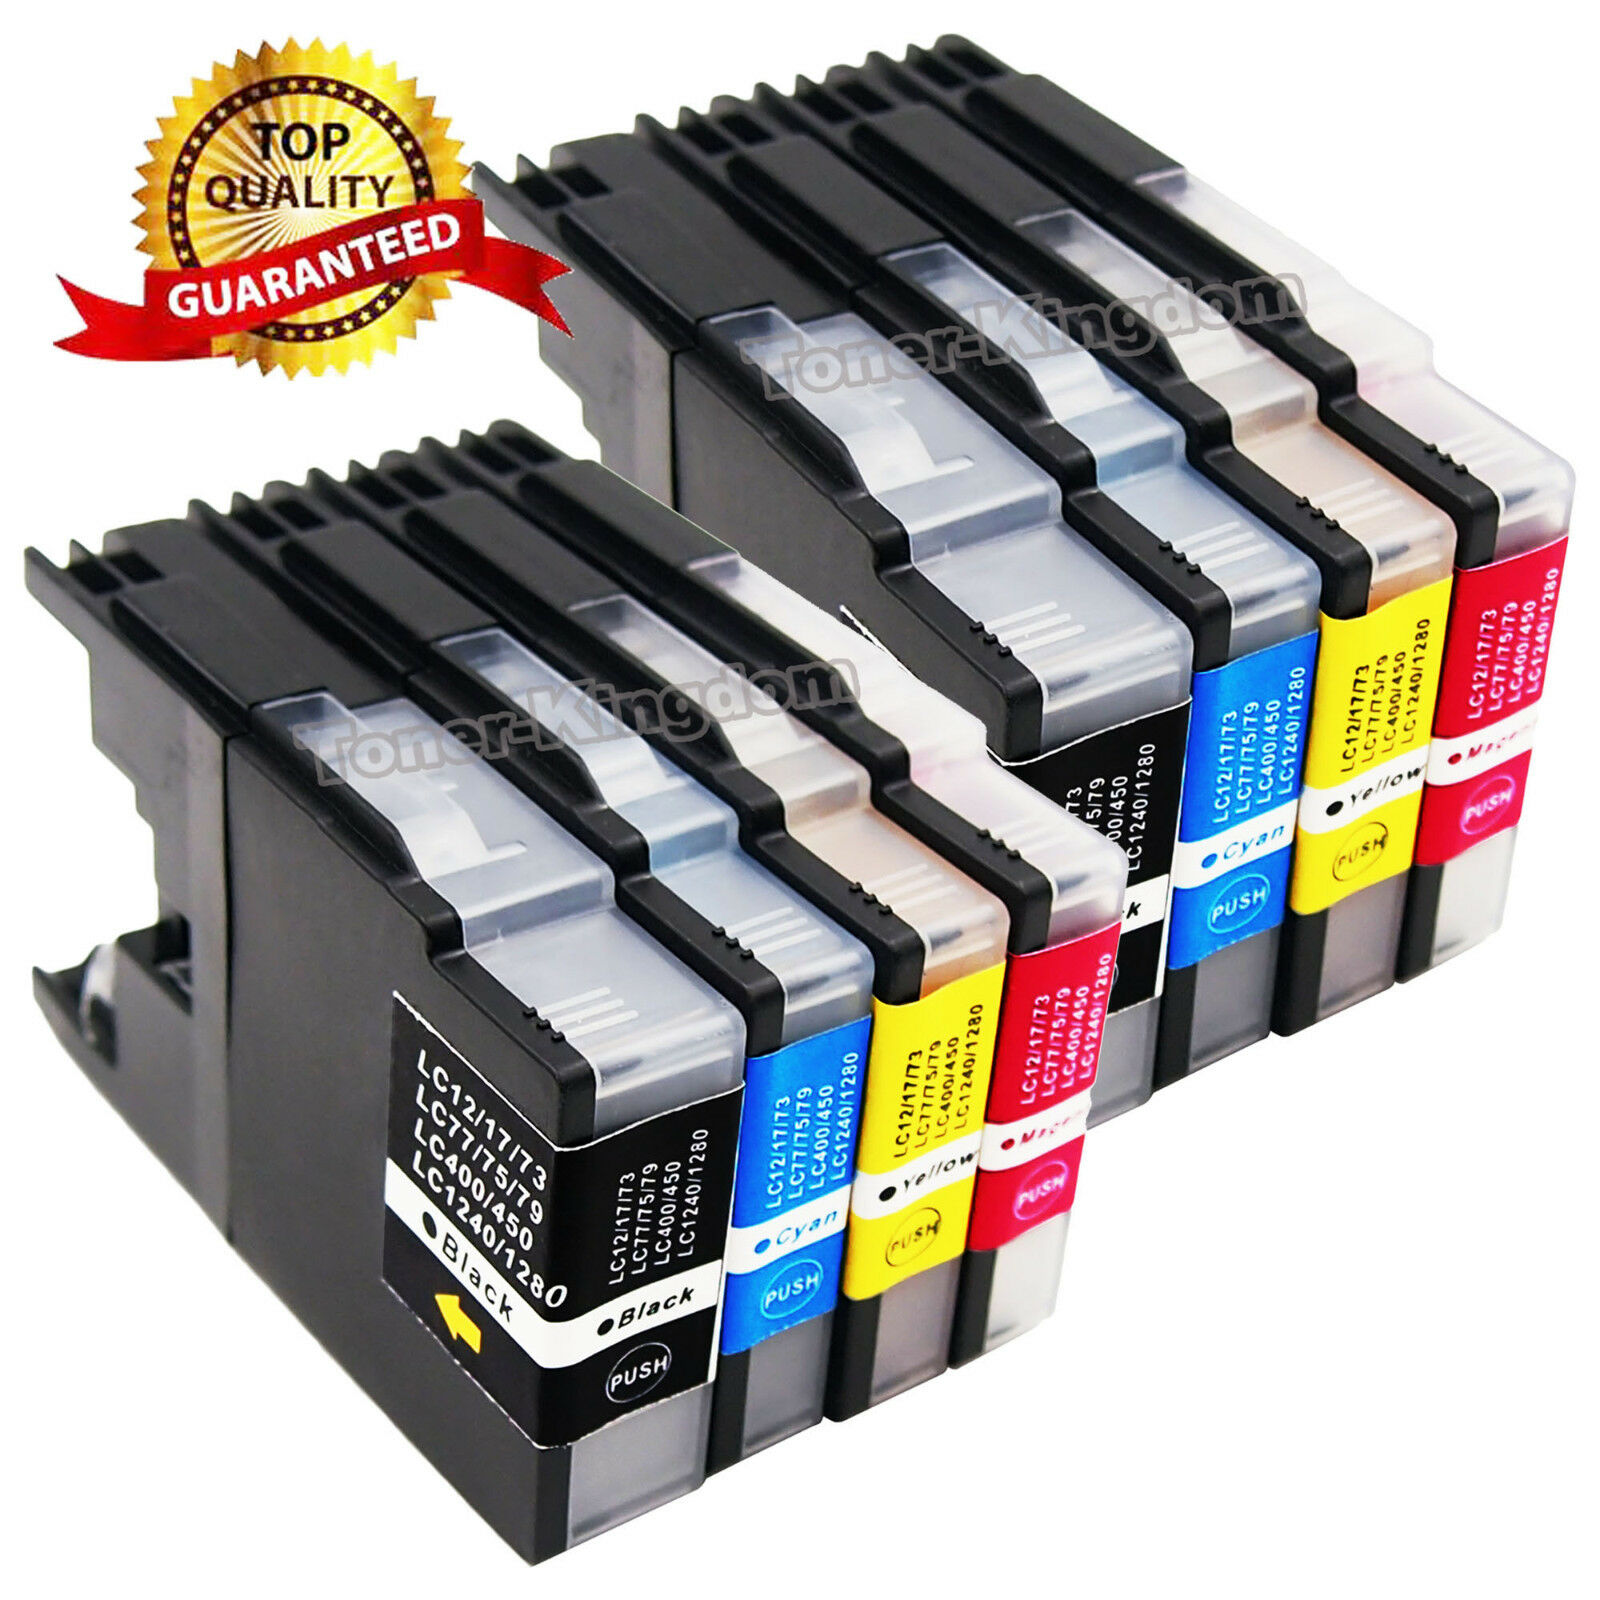 8PK LC-75 LC71 Ink Cartridges for Brother MFC-J430w MFC-